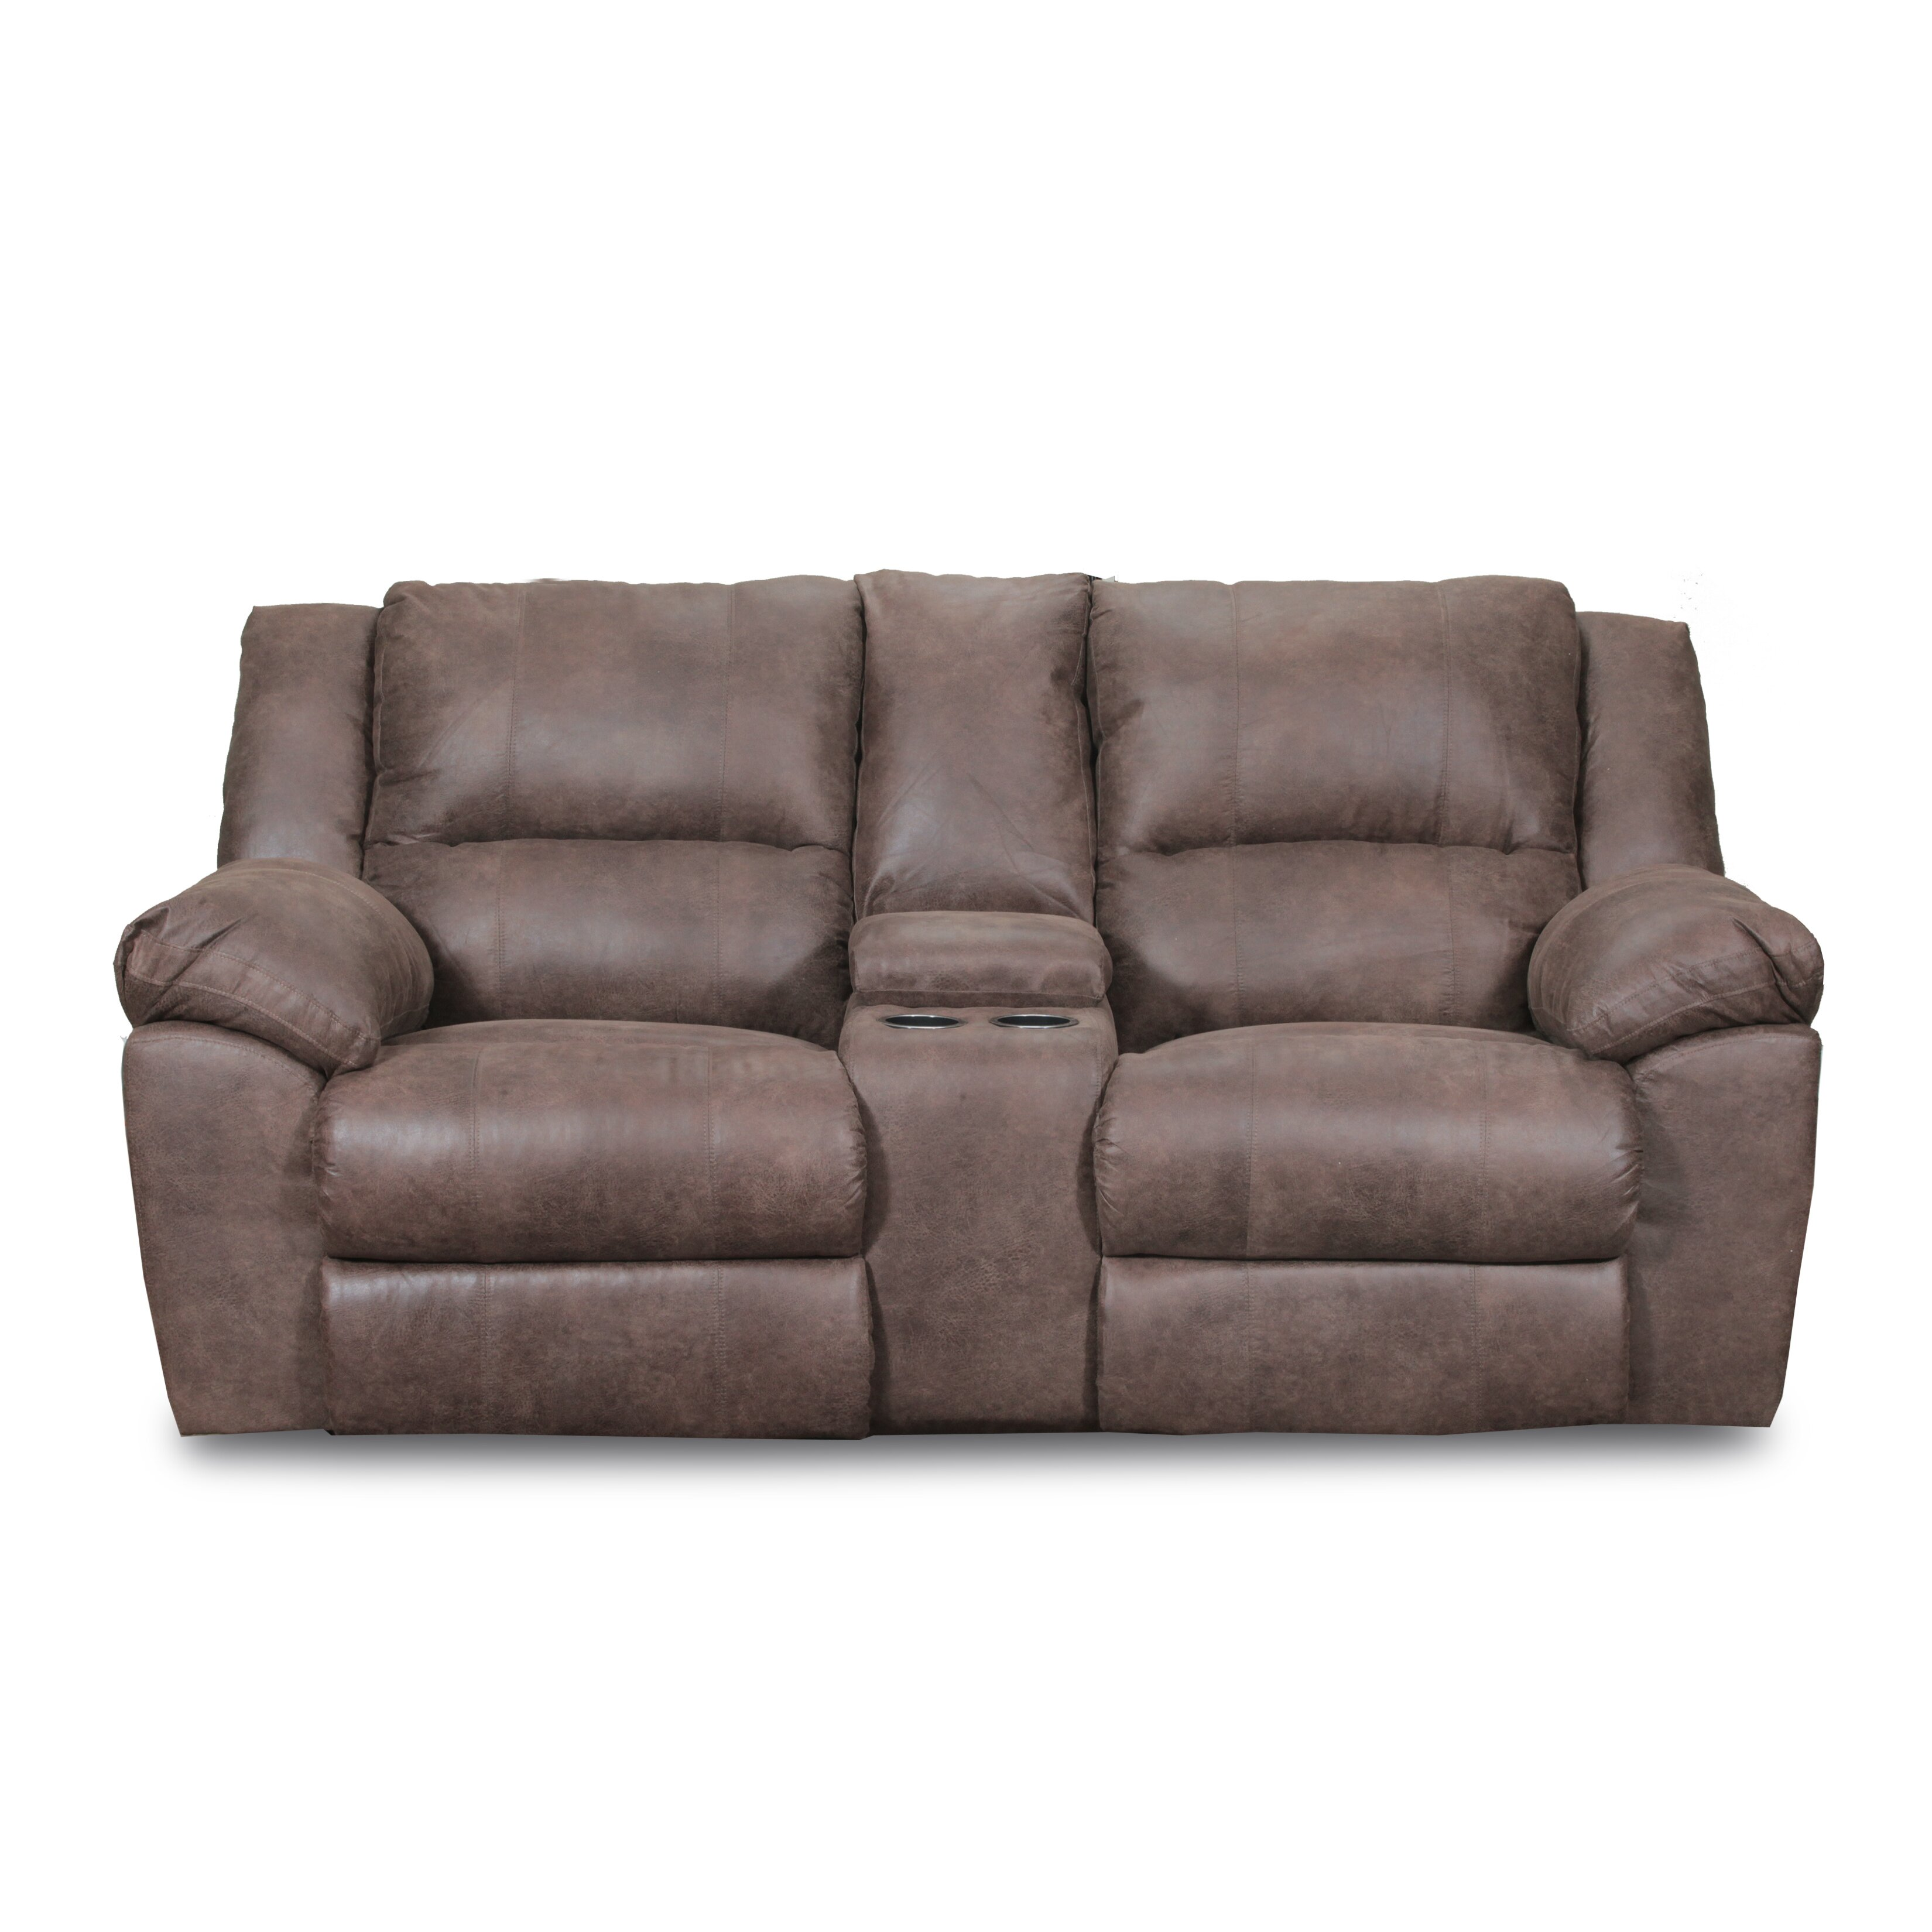 Simmons Upholstery Phoenix Mocha Double Motion Loveseat